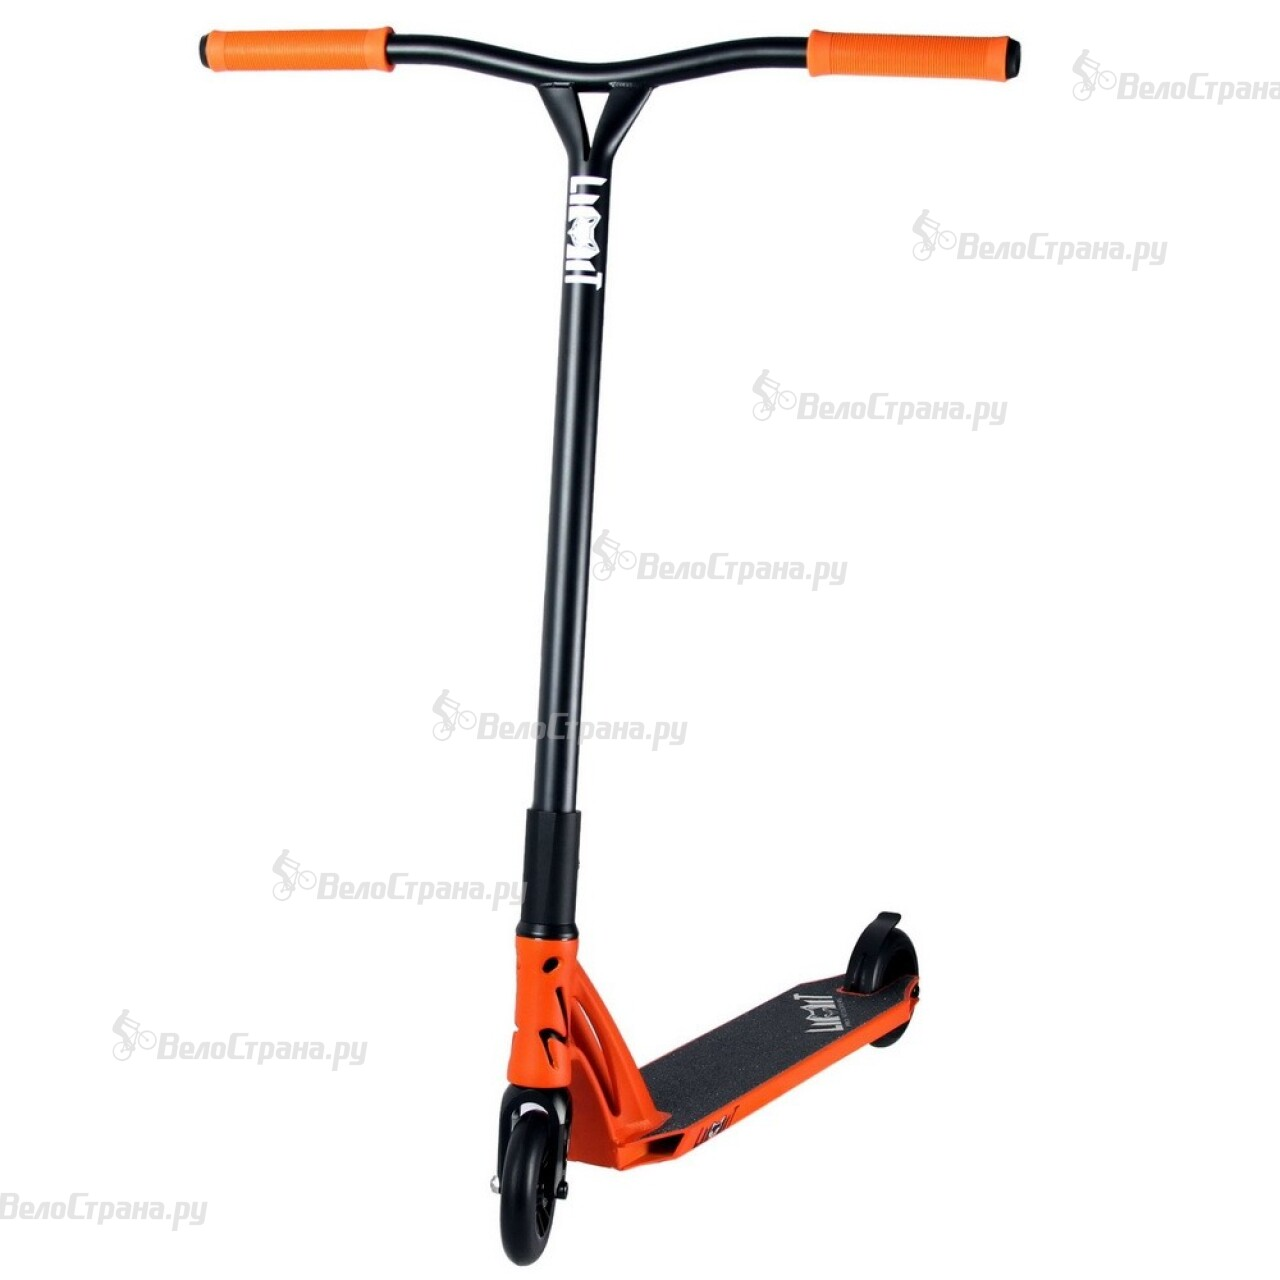 Самокат Limit LMT06 PRO STUNT SCOOTER